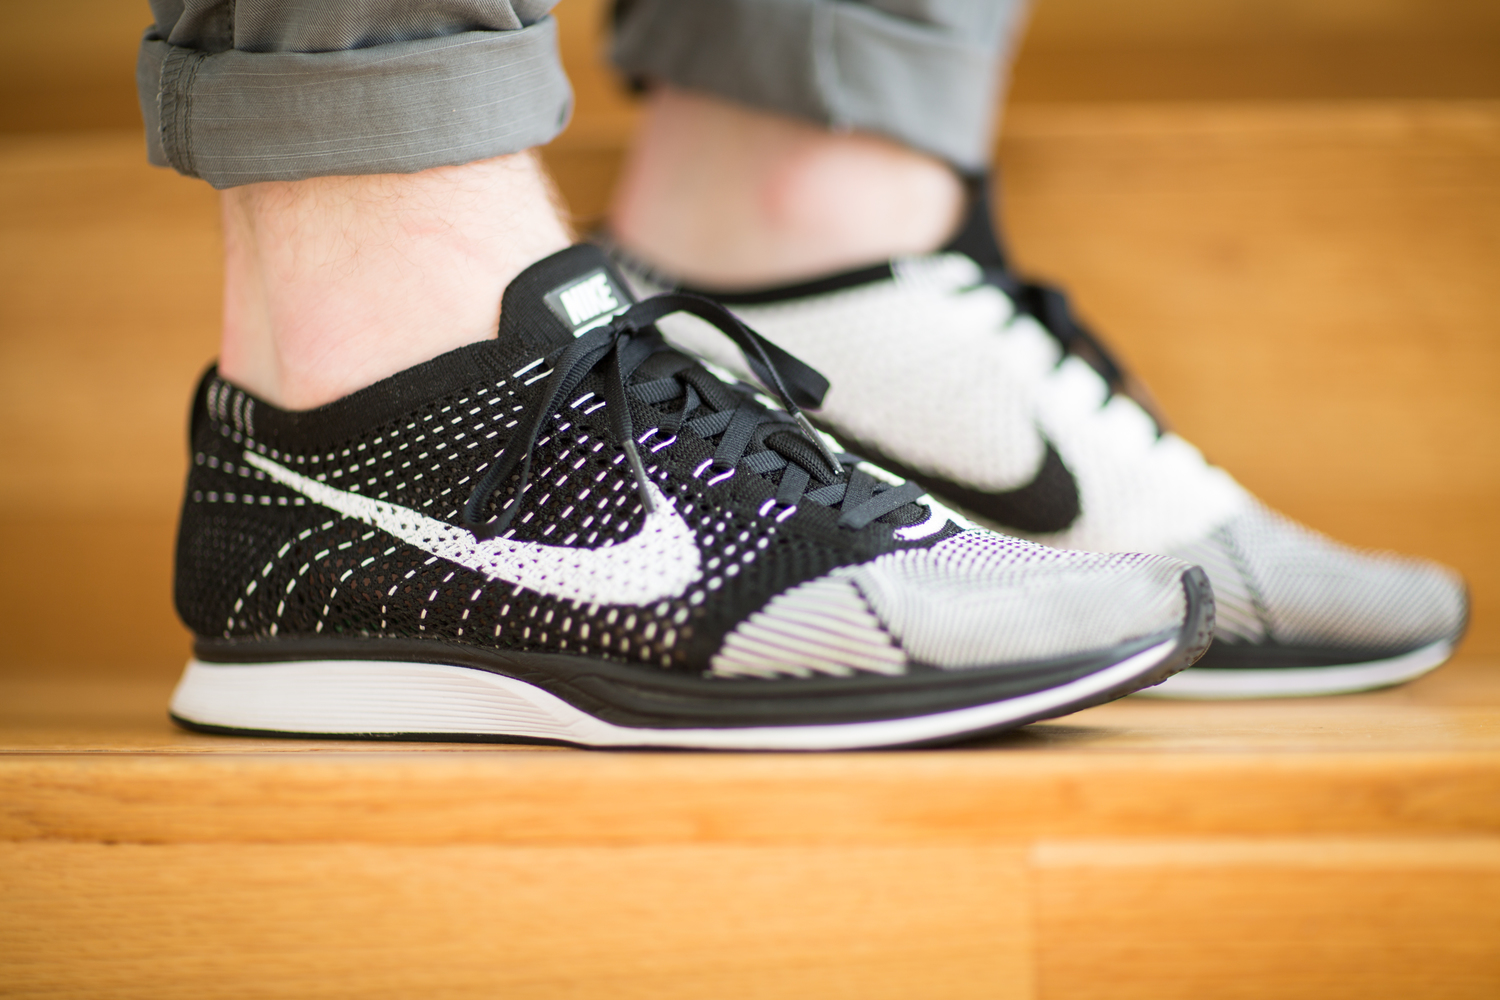 3dfc9b2459412 Shoe Review  Nike Flyknit Racer